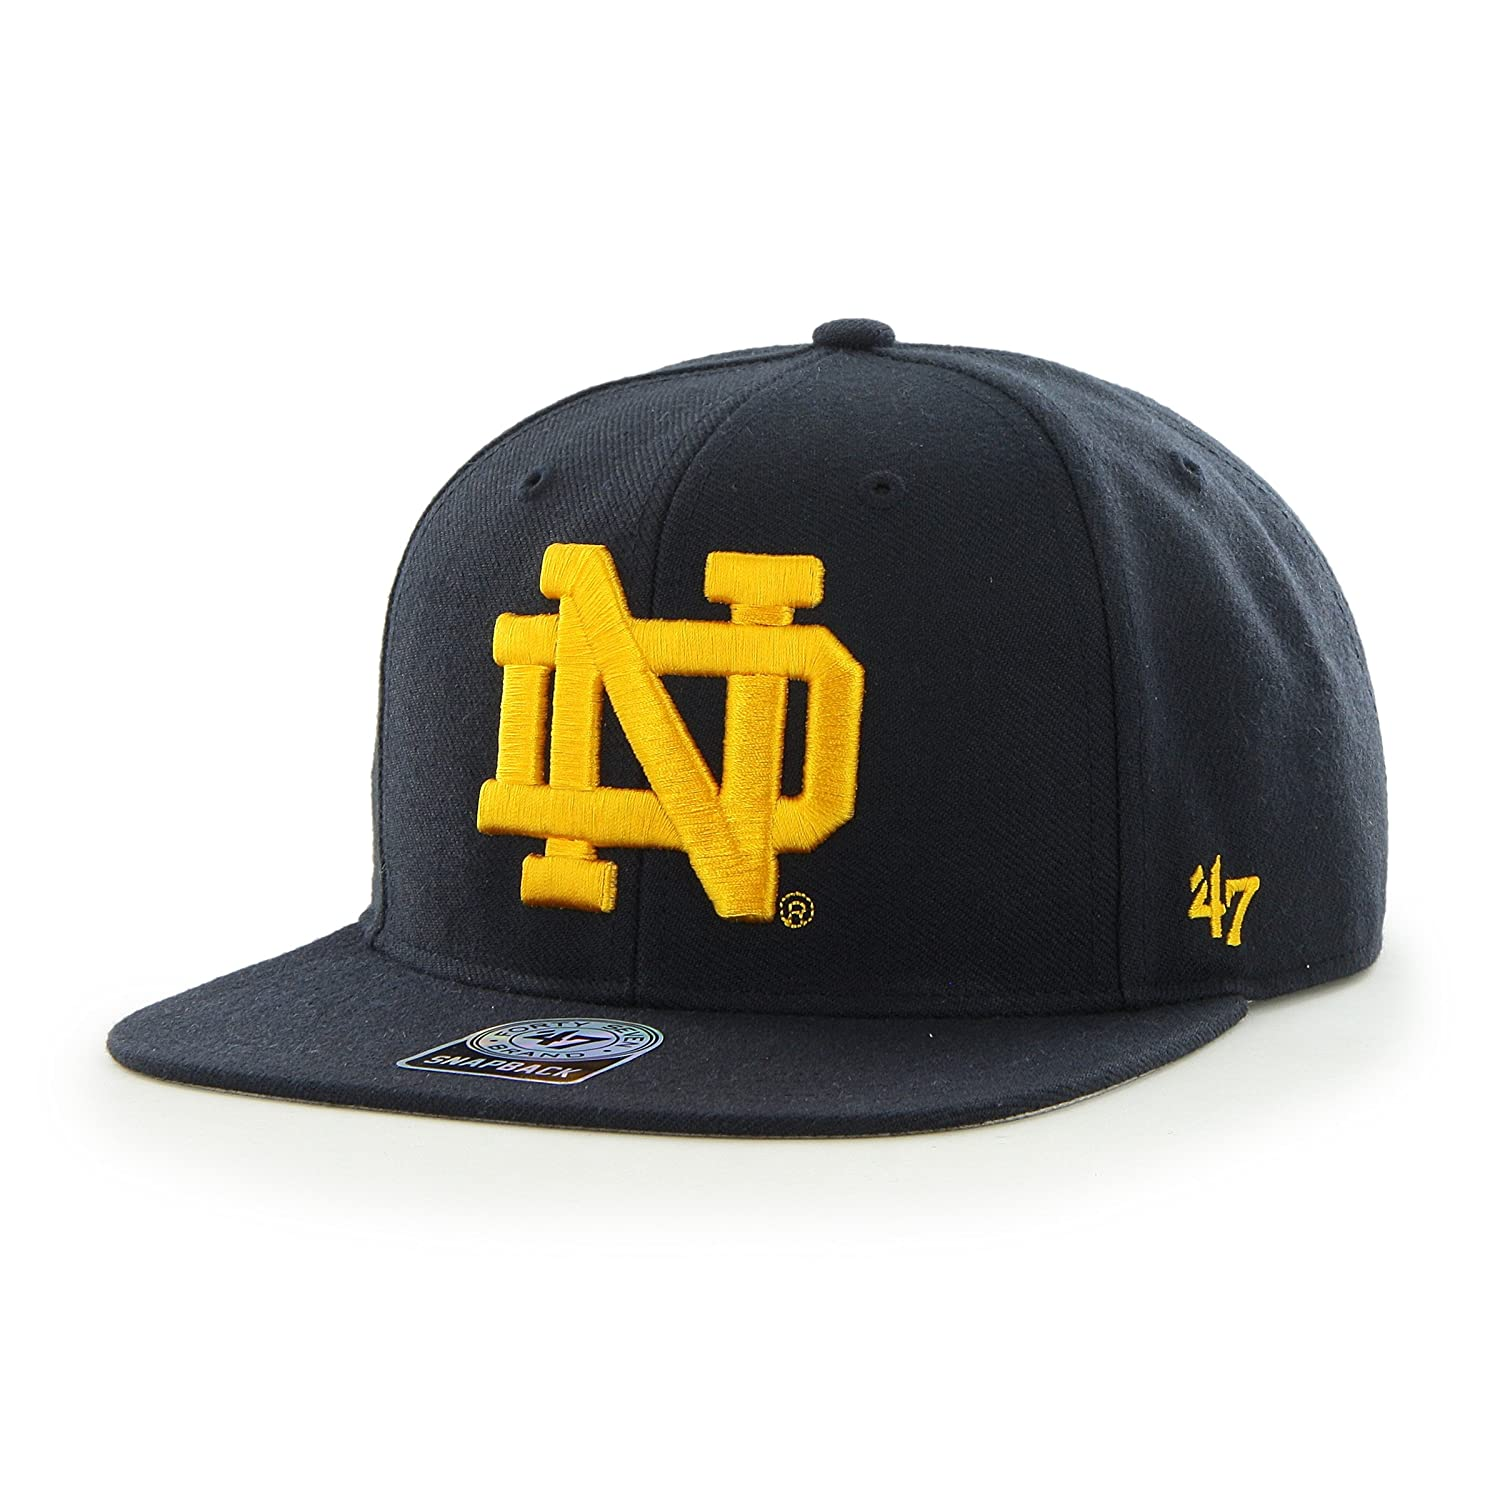 8b435977b18 Amazon.com    47 NCAA Notre Dame Fighting Irish Sure Shot Captain  Adjustable Snapback Hat